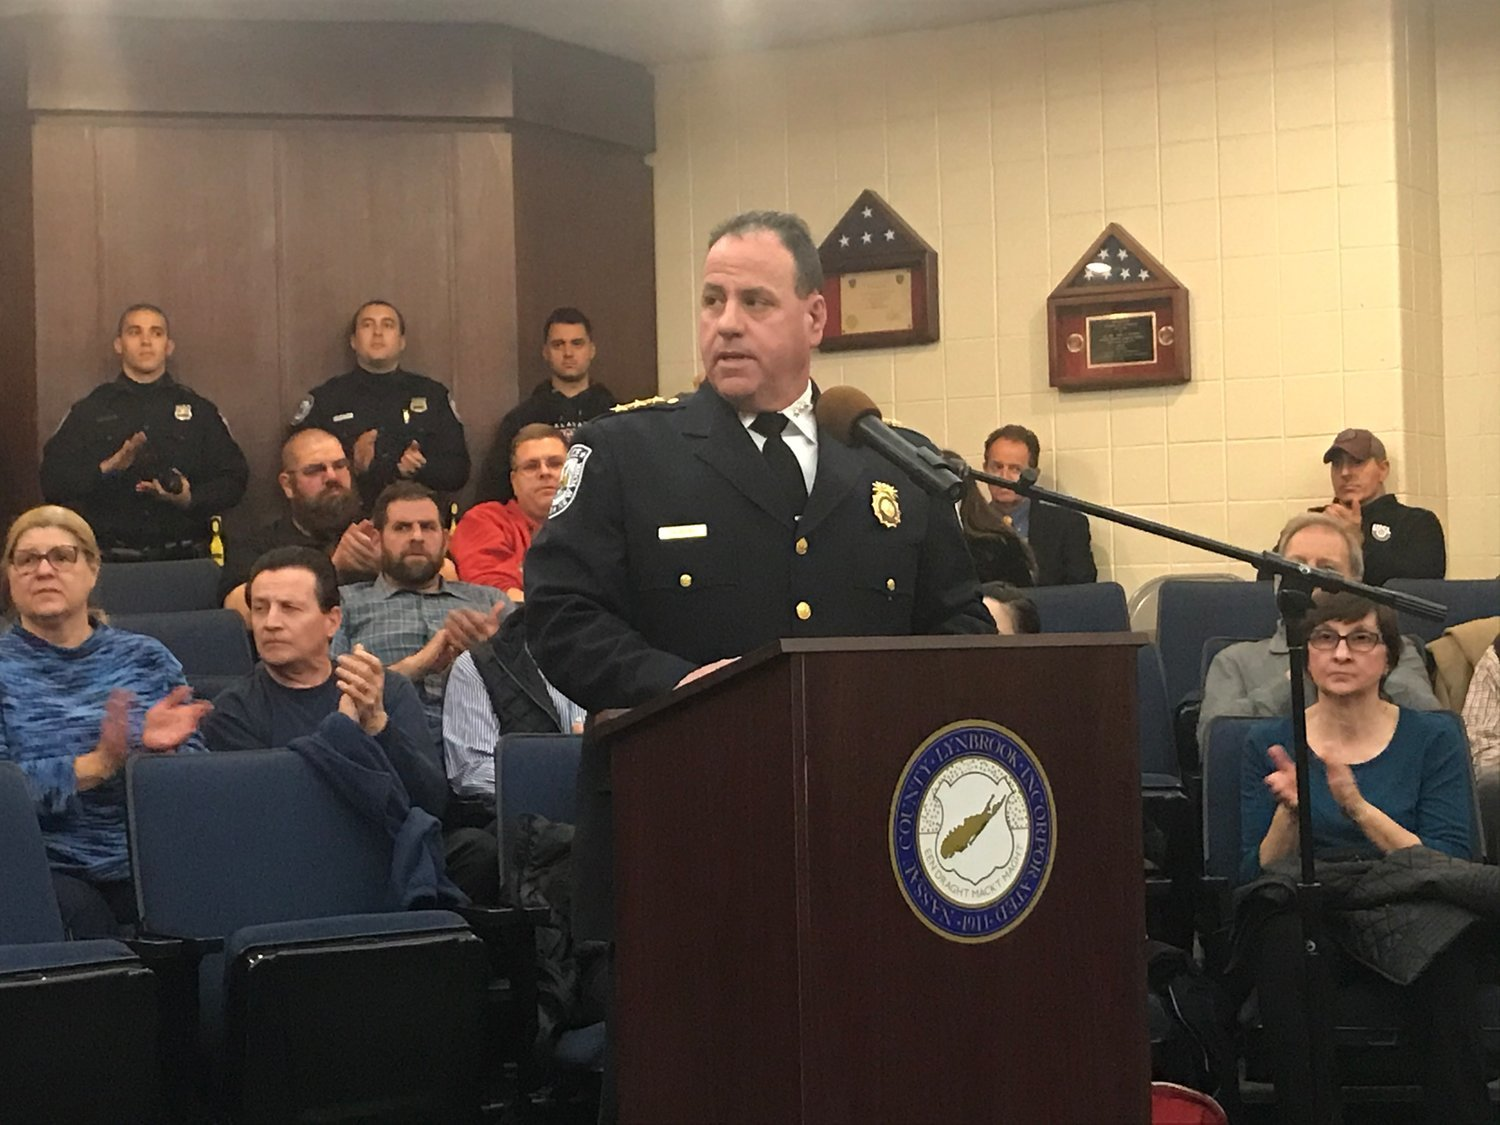 Lynbrook Police Chief Brian Paladino spoke at the Feb. 3 village board meeting and warned residents about recent thefts of checks from mailboxes.